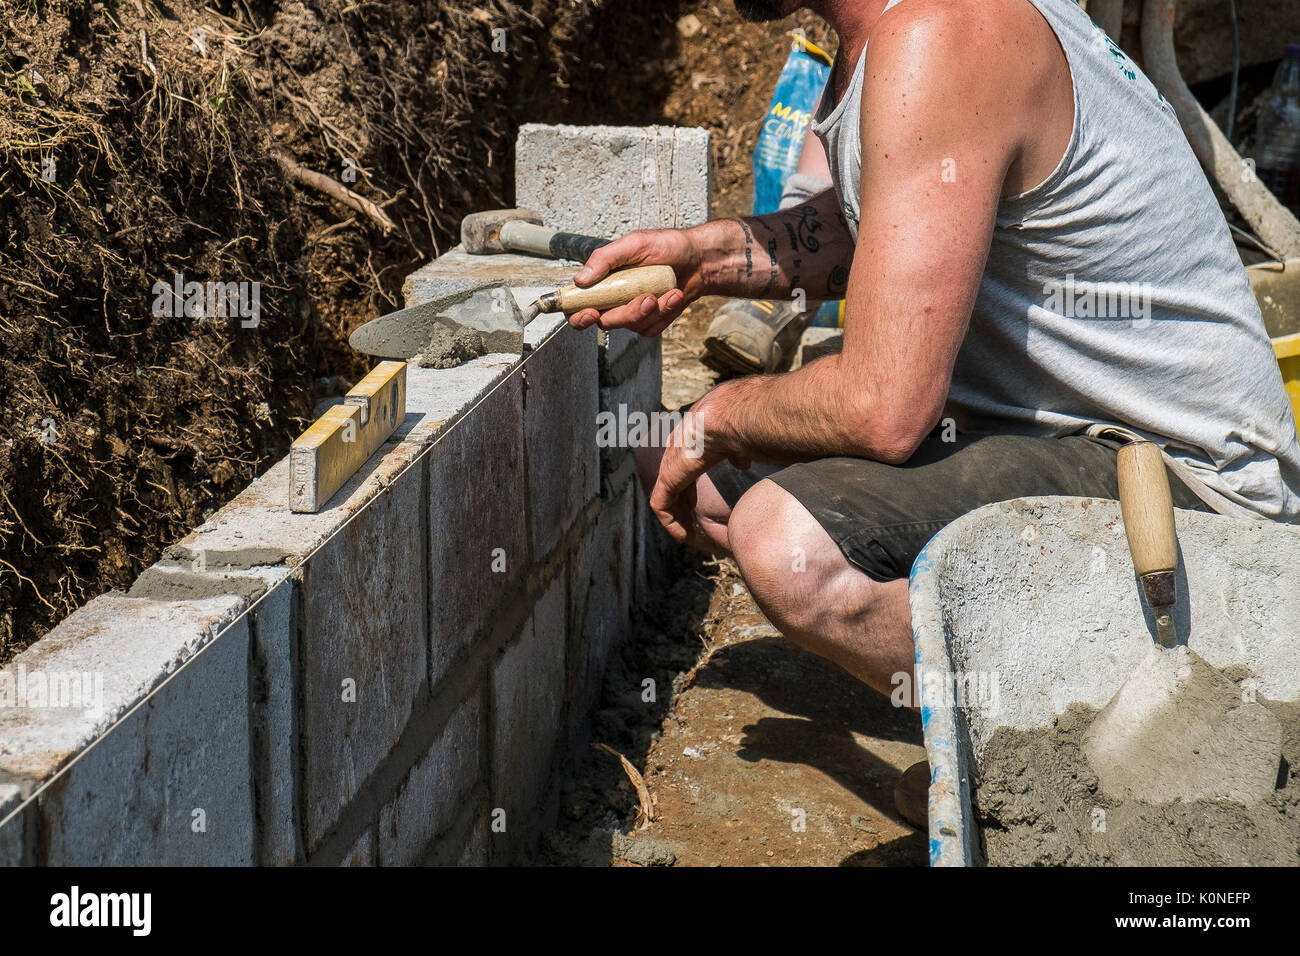 Workers building a block wall on a building site. - Stock Image